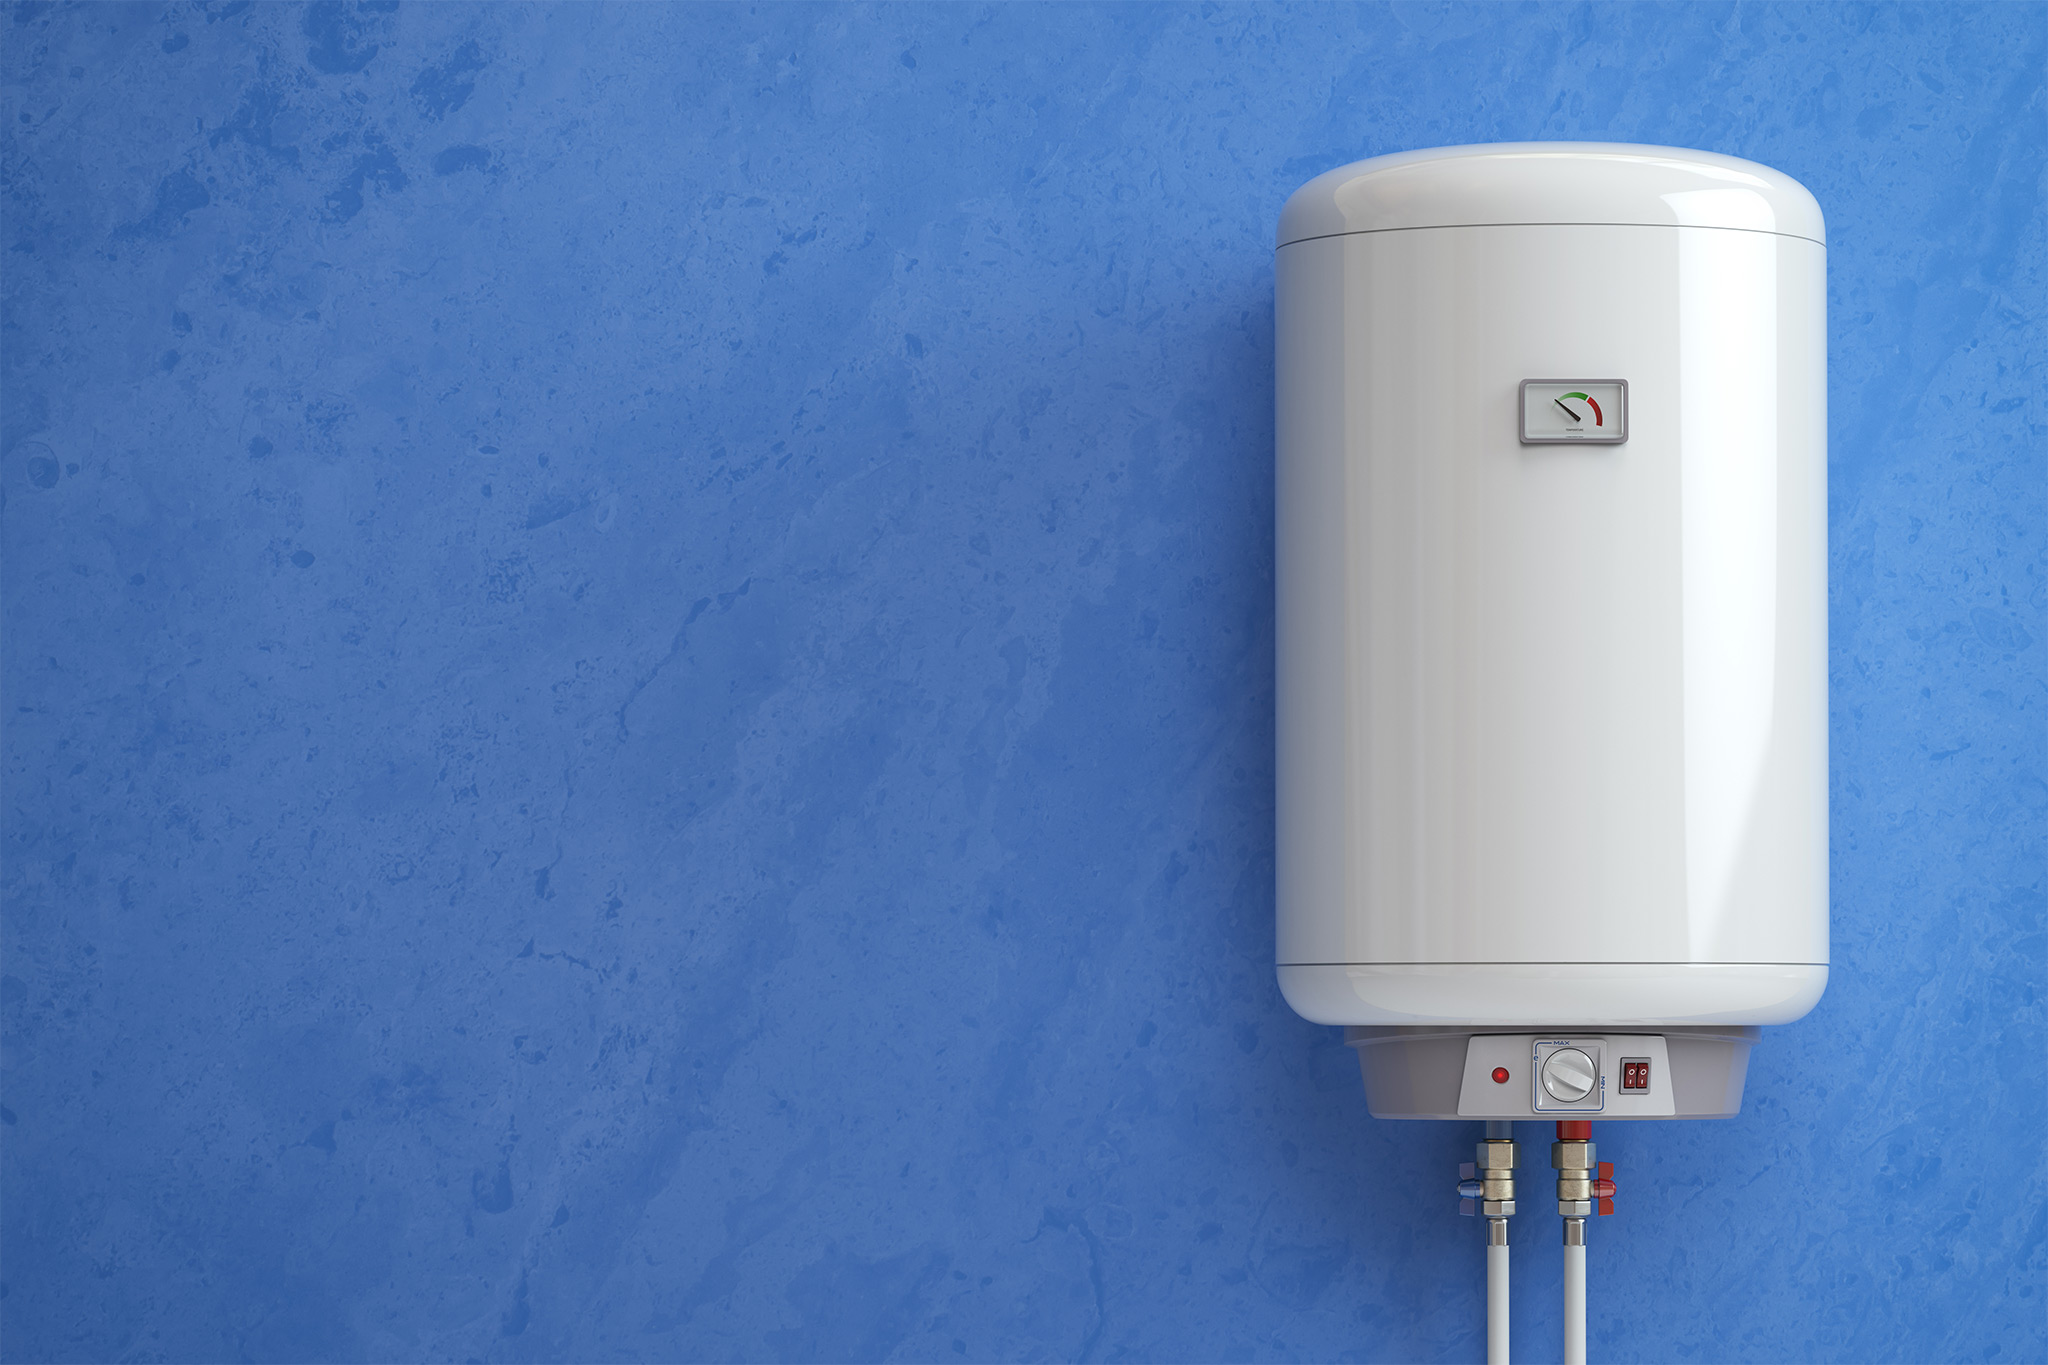 electric-boiler-water-heater-on-the-blue-wall-MBDKPCH (1)